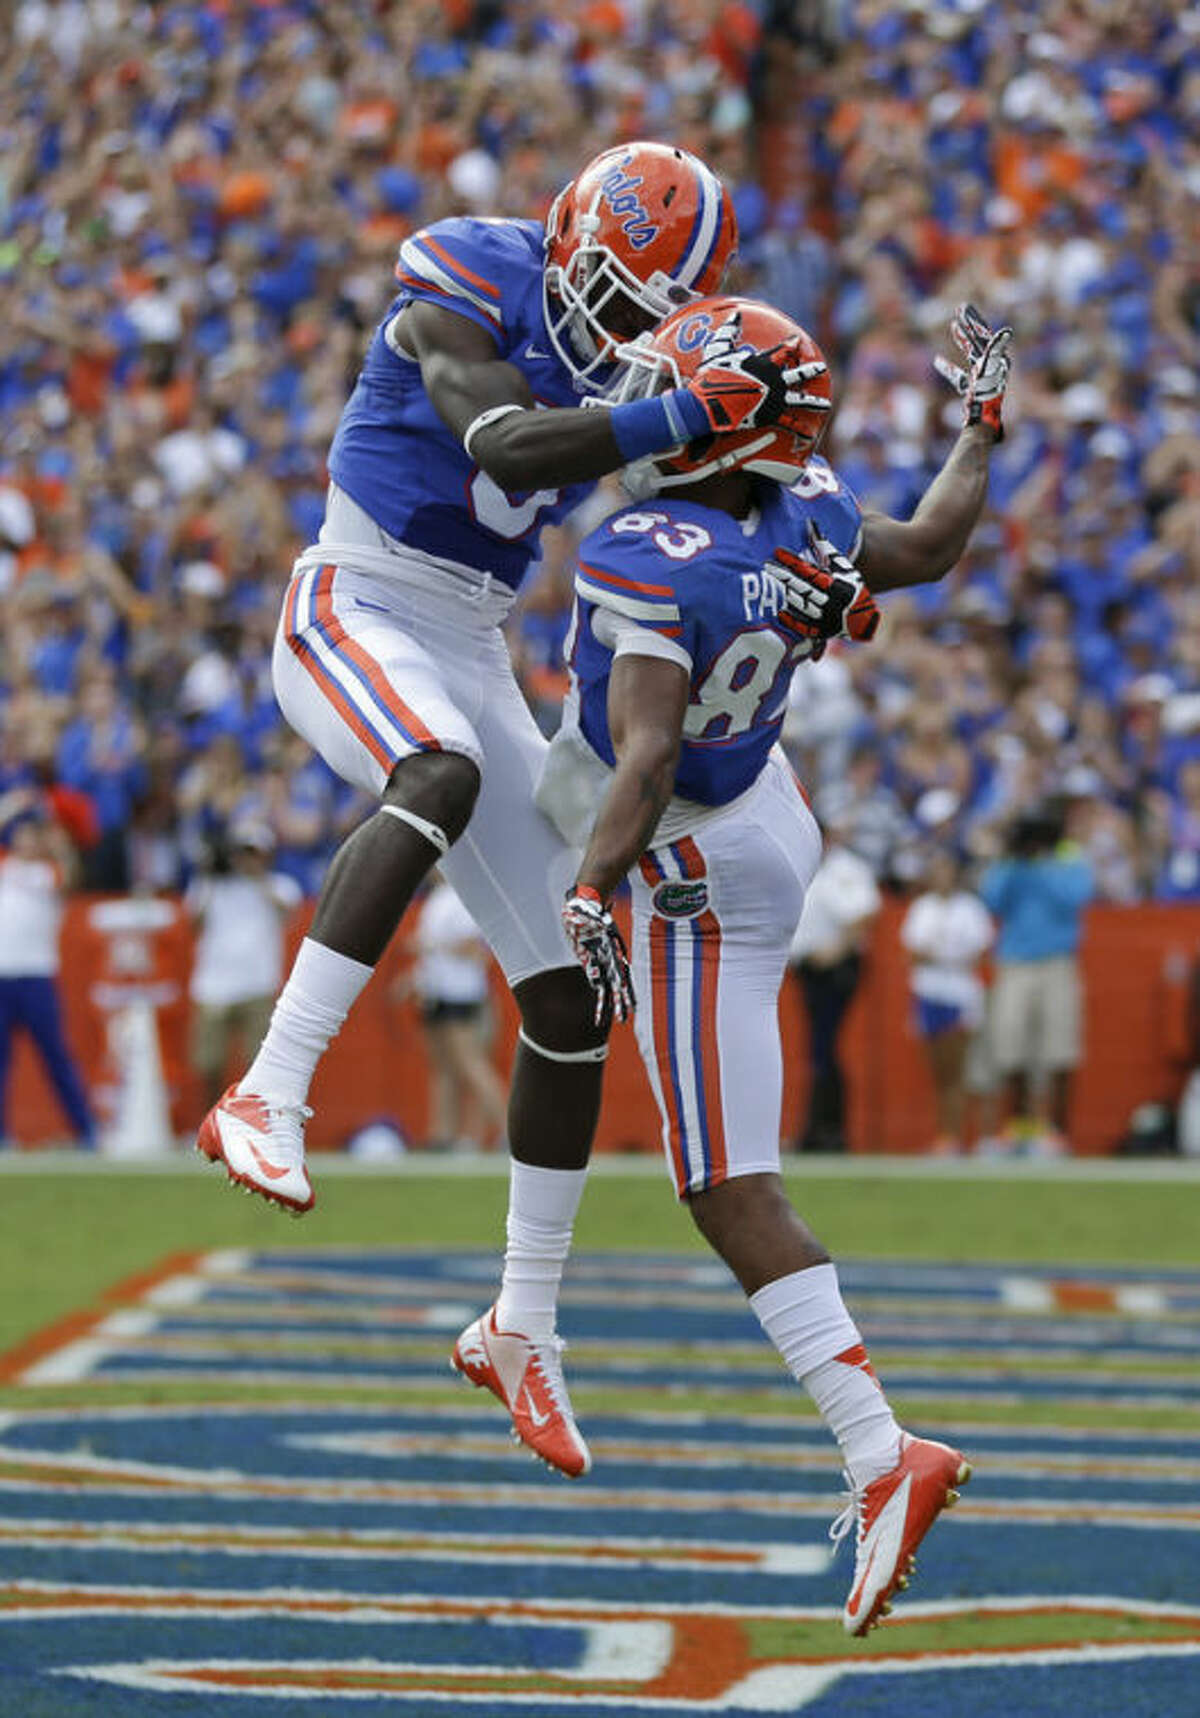 Florida wide receiver Solomon Patton, right, celebrates his 52-yard touchdown pass play against Tennessee with wide receiver Ahmad Fulwood (5) during the first half of an NCAA college football game in Gainesville, Fla., Saturday, Sept. 21, 2013.(AP Photo/John Raoux)